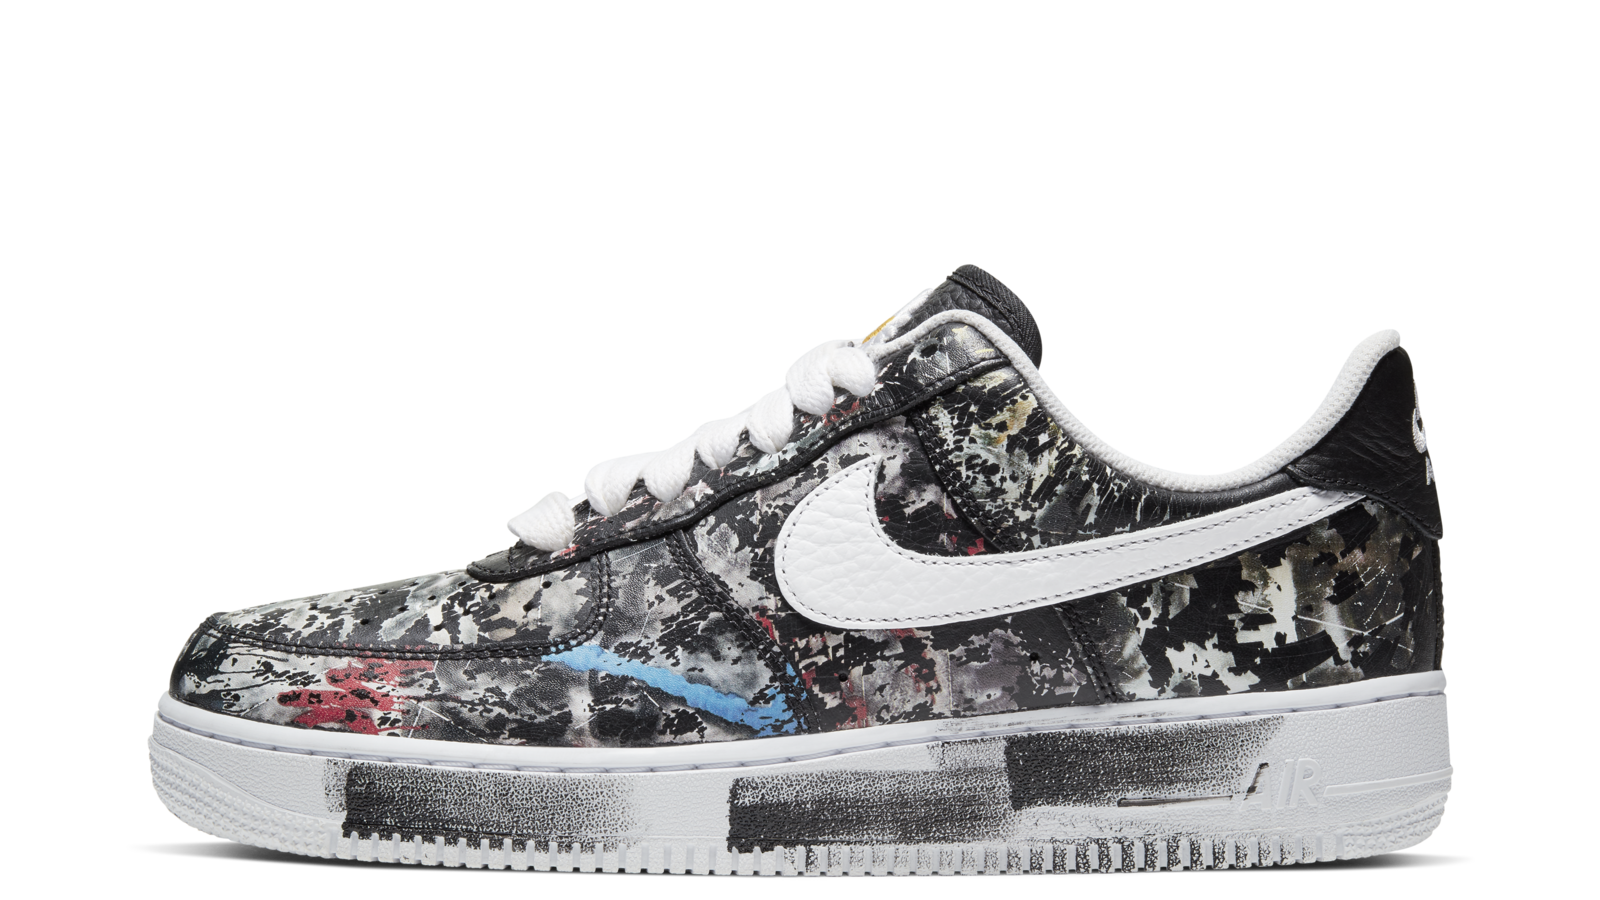 G-DRAGON Air Force 1 Release Details